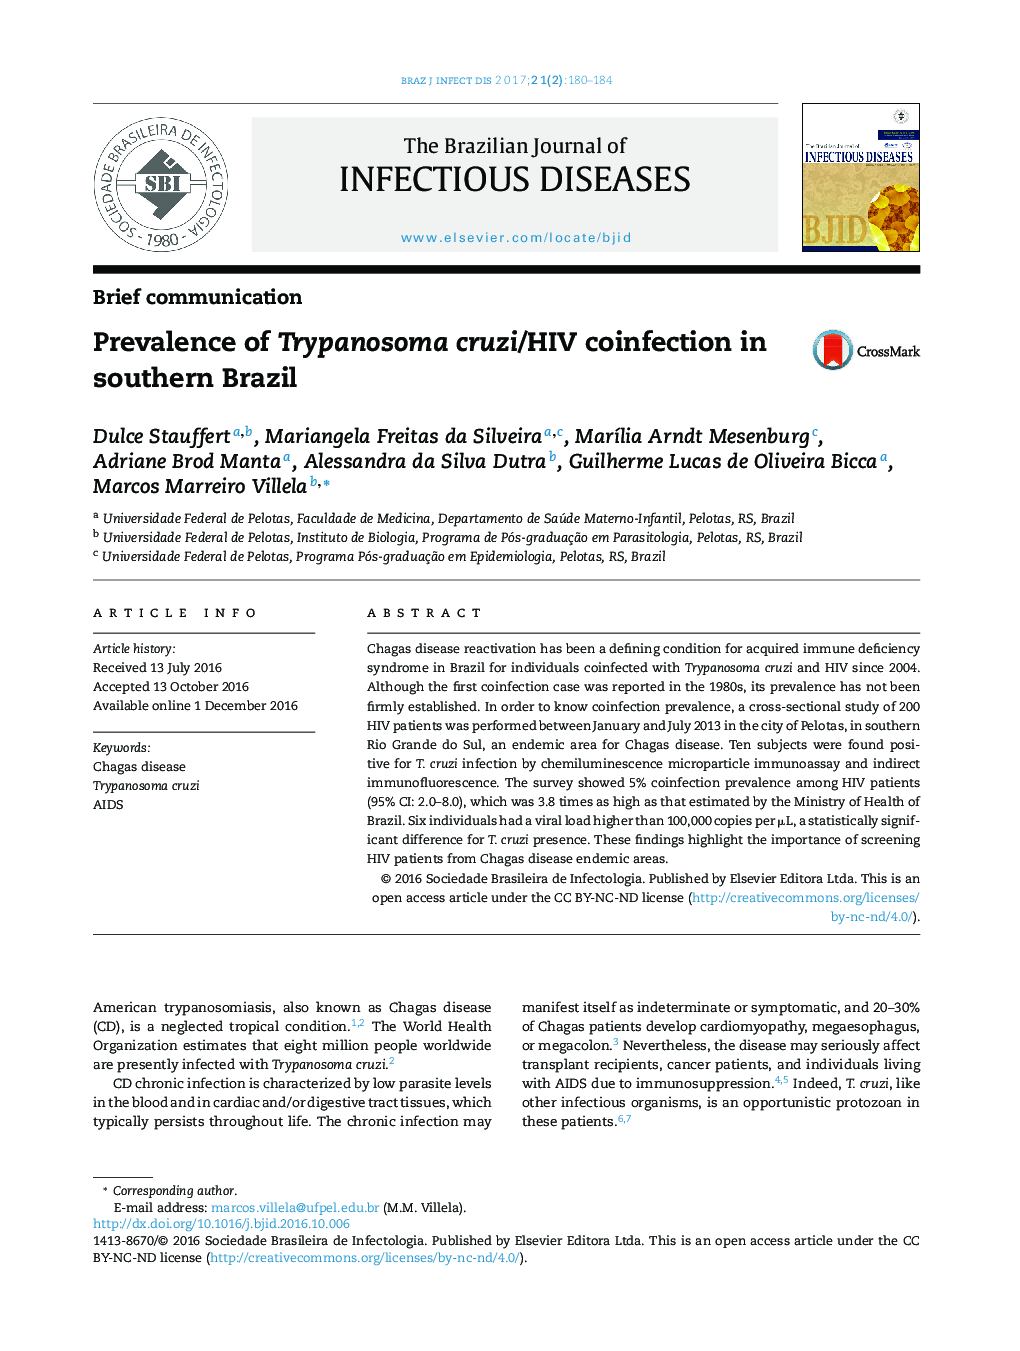 Prevalence of Trypanosoma cruzi/HIV coinfection in southern Brazil